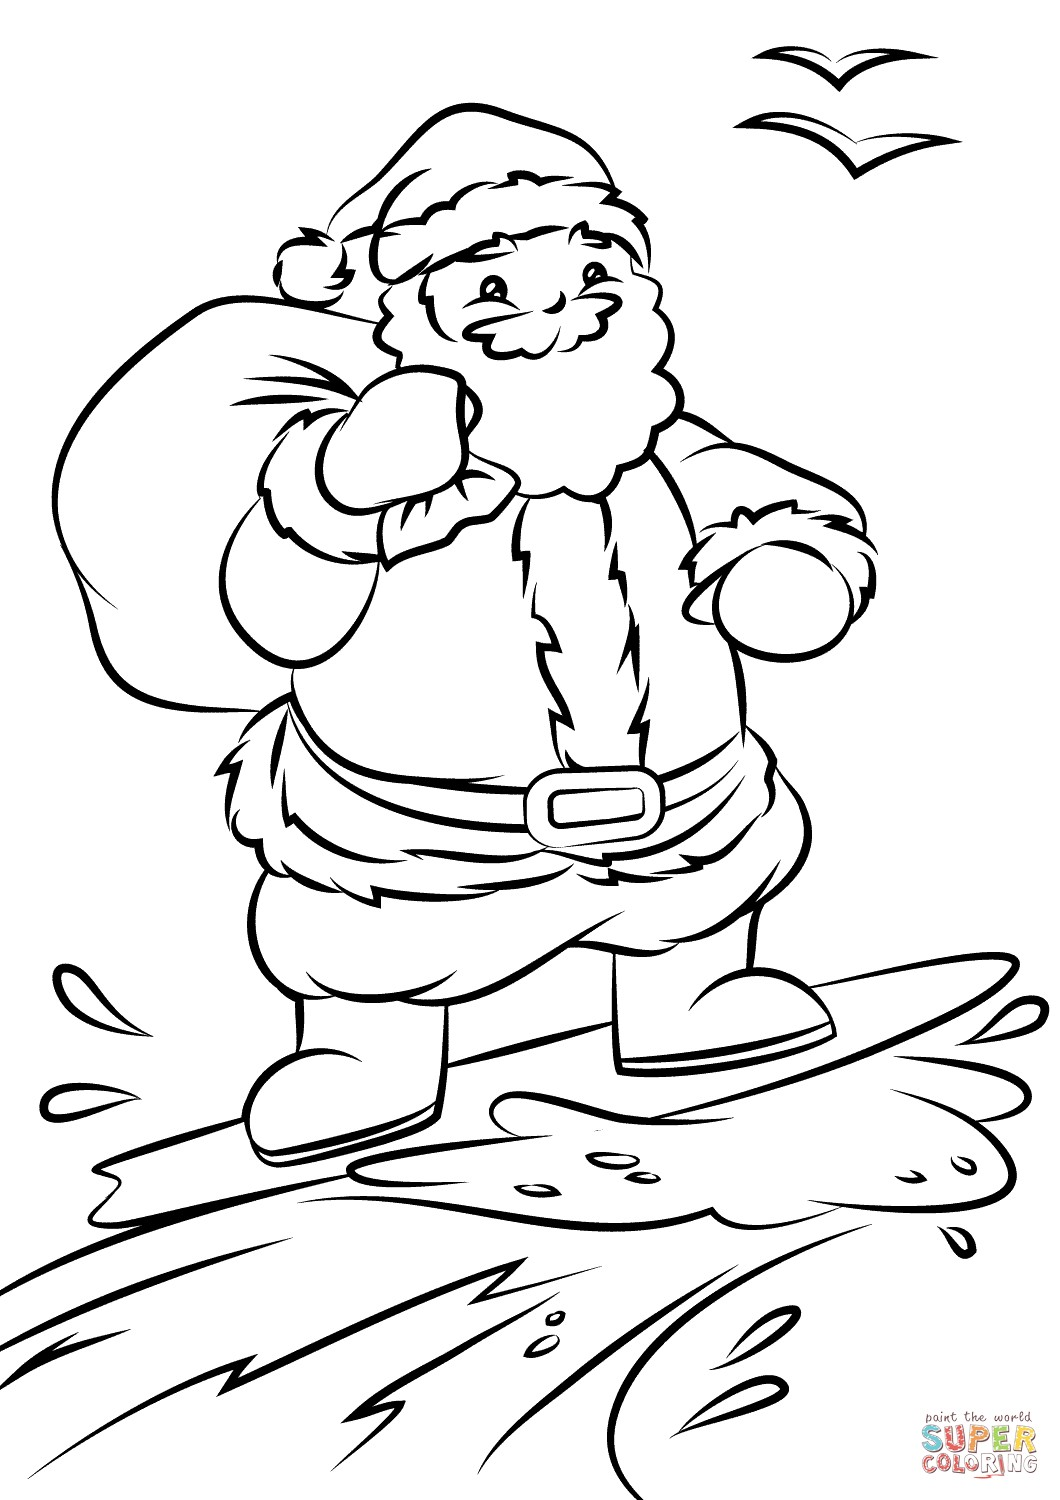 1060x1500 Surfing Coloring Pages Printable Fresh Surfing Drawing